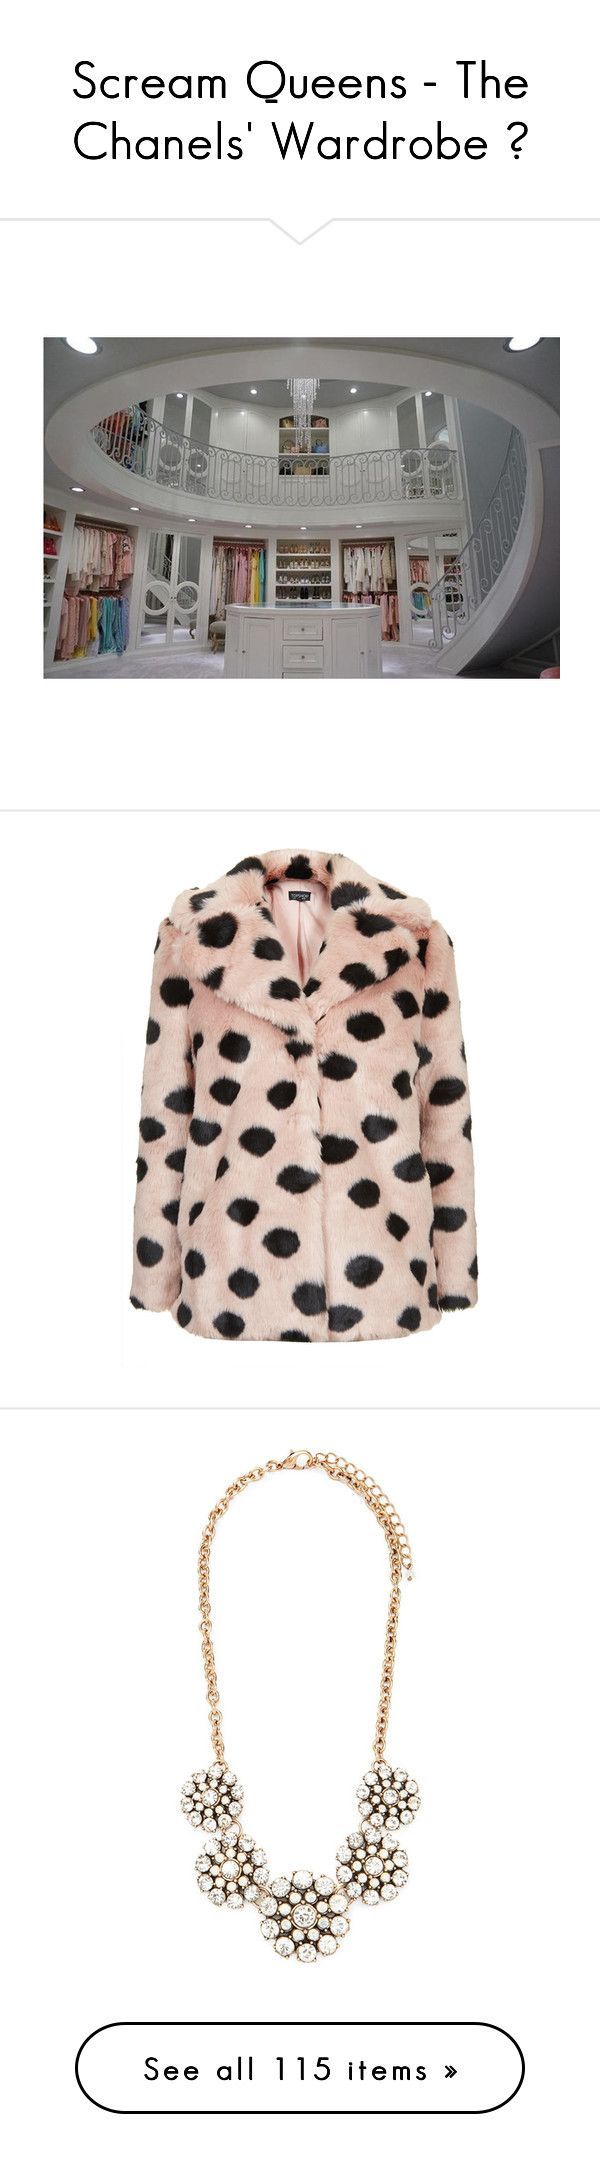 """""""Scream Queens - The Chanels' Wardrobe ♥"""" by chaneladdicted ❤ liked on Polyvore featuring ScreamQueens, thechanels, outerwear, coats, fur, jackets, pale pink, topshop, faux fur coats y polka dot coat"""